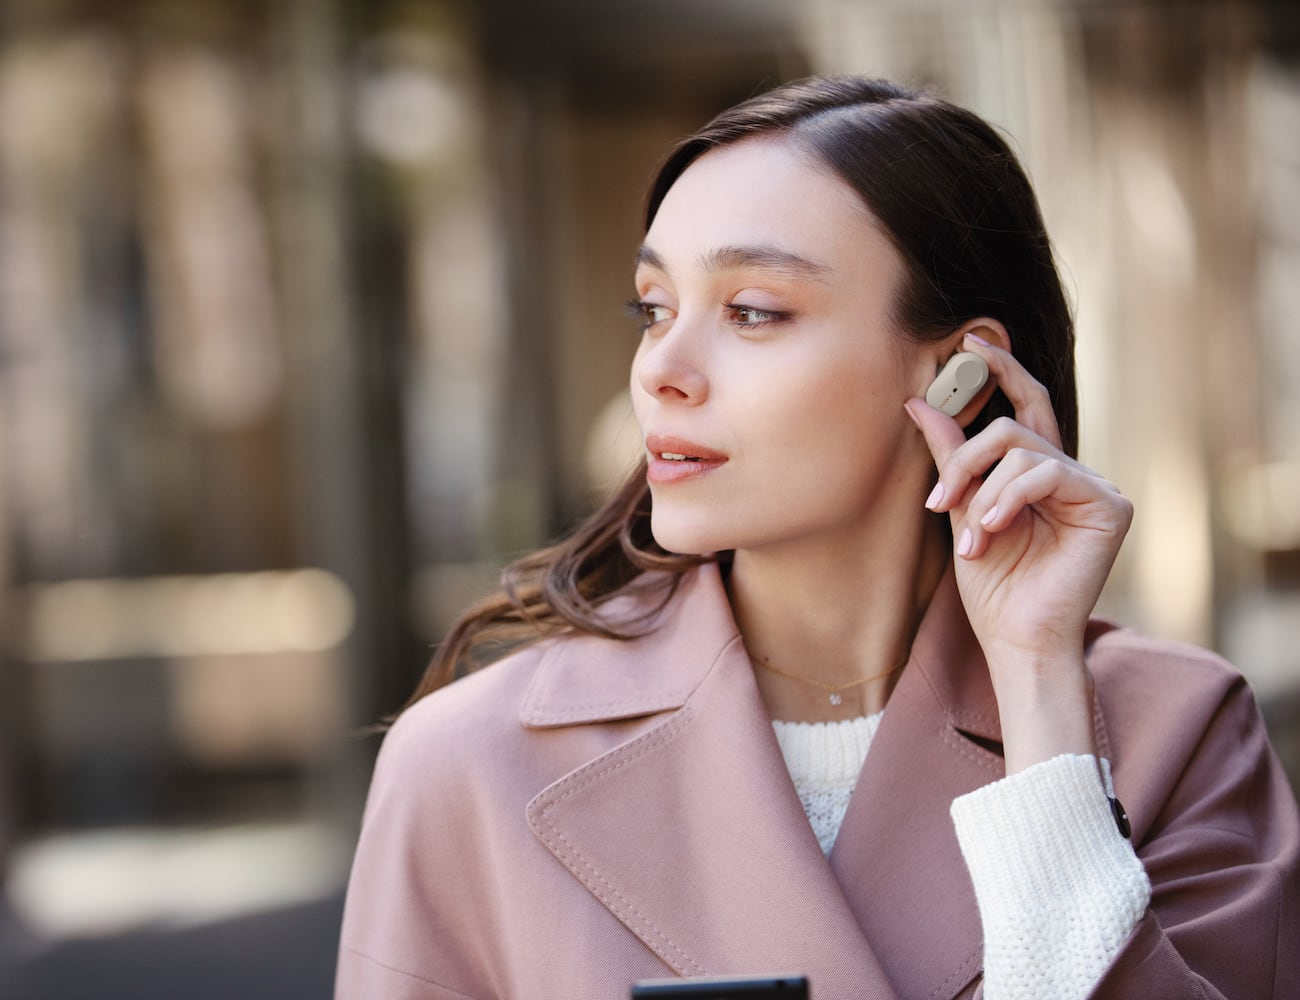 Sony WF-1000XM3 Wireless Noise-Canceling Headphones block all the noise you don't want to hear